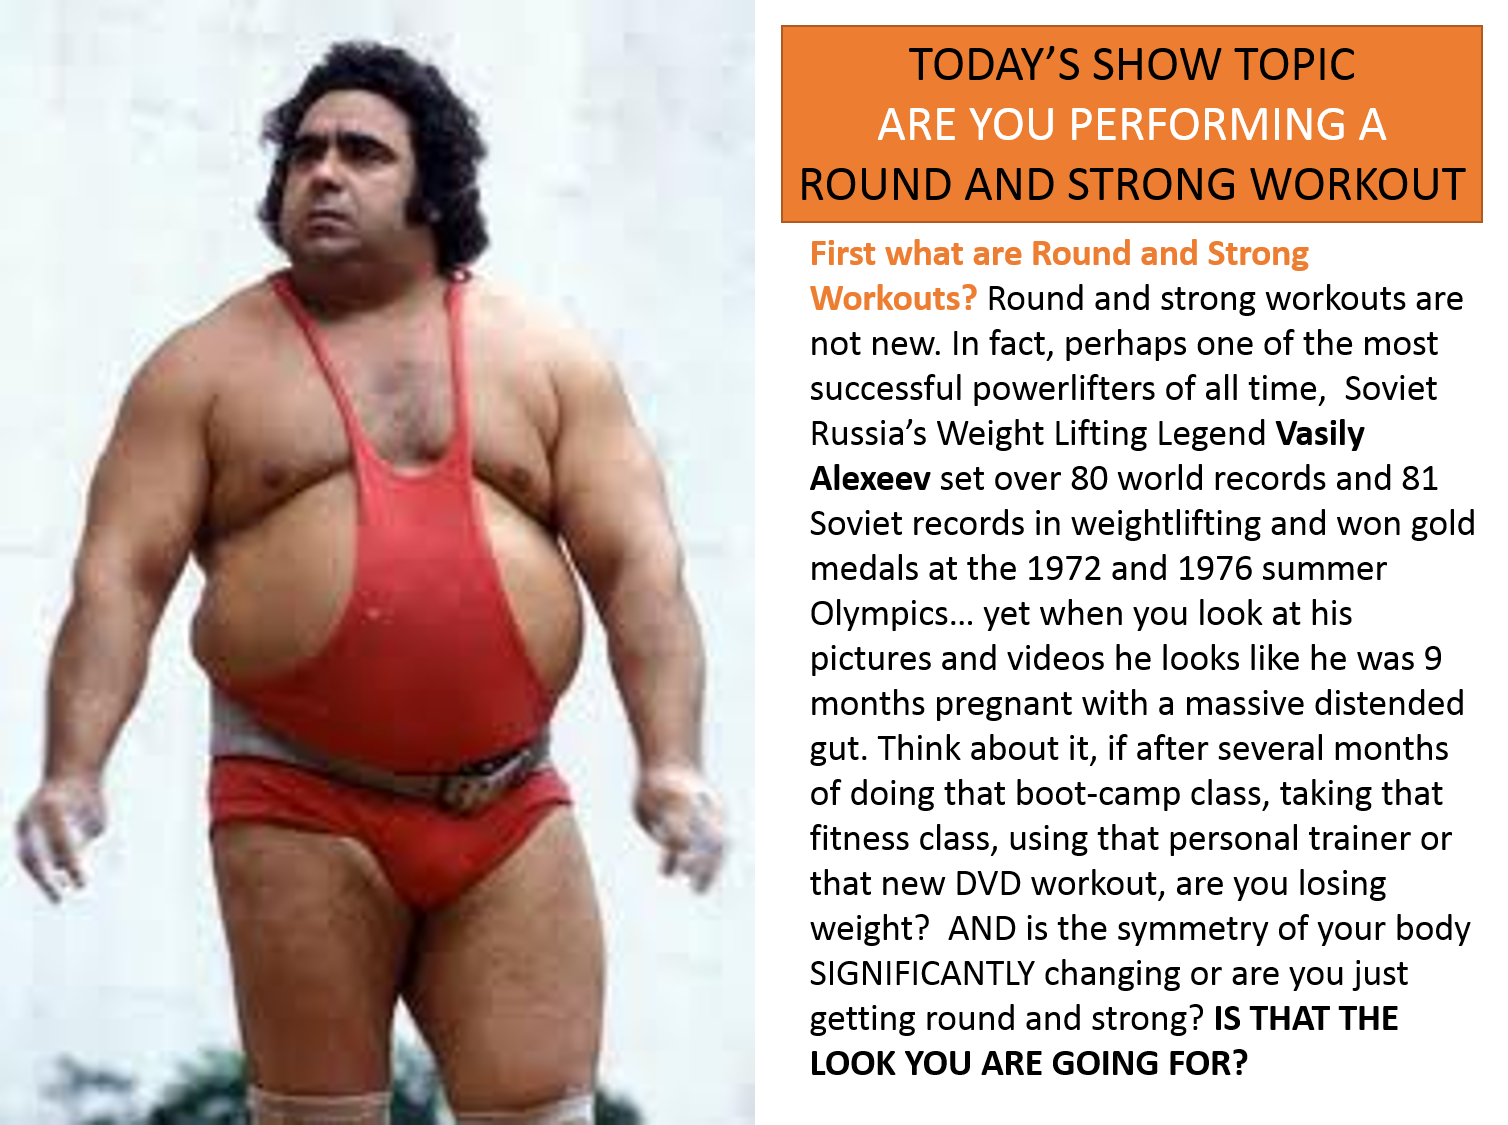 ARMAGEDDON WEIGHT LOSS - ROUND AND STRONG SHOW TOPIC - BRUCE WAYNE - DOCSCIENCE - RADIO SHOW